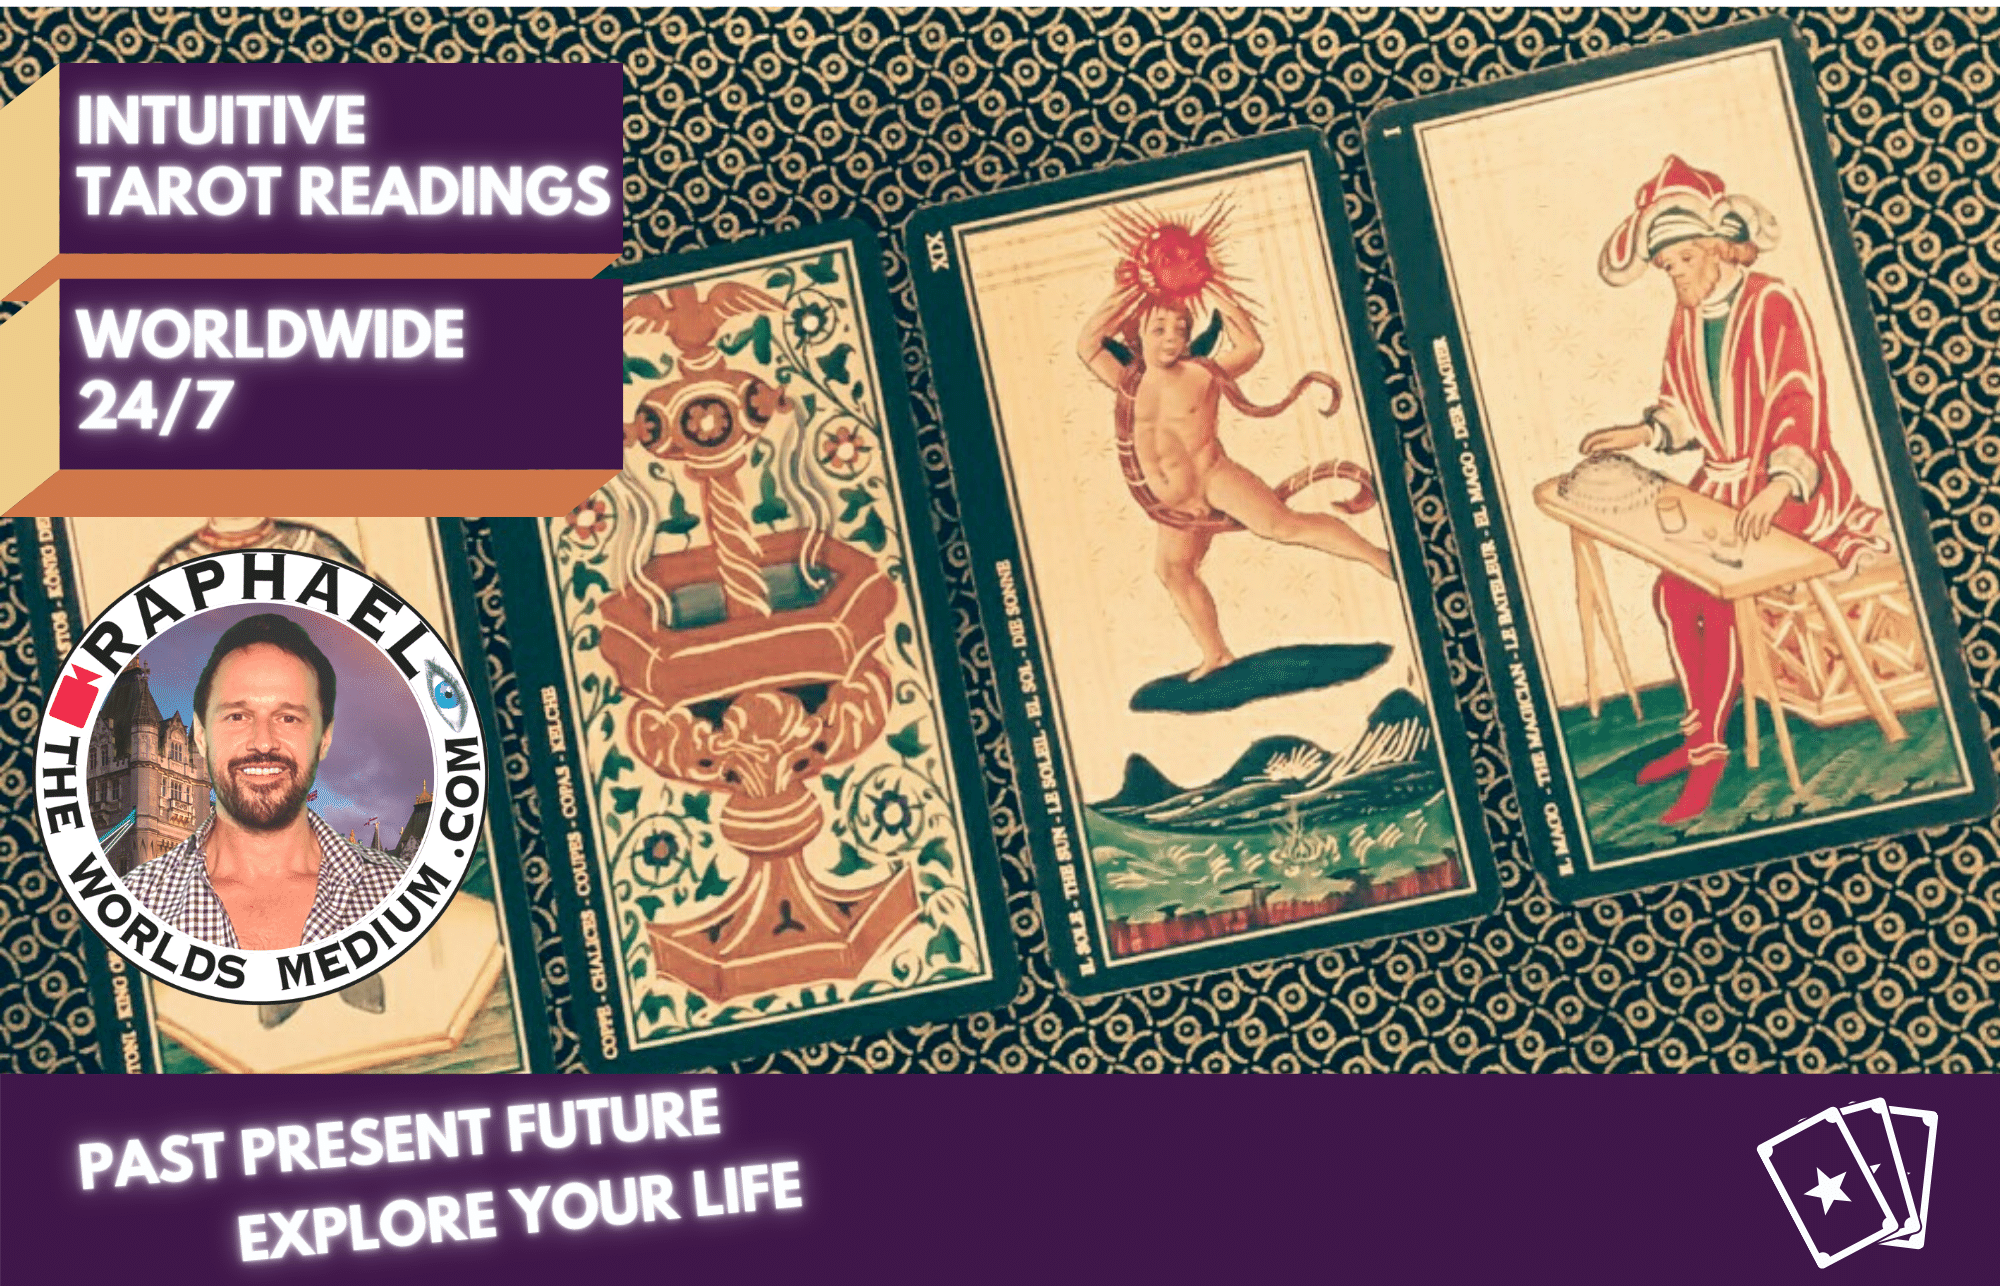 Intuitive Tarot Reading